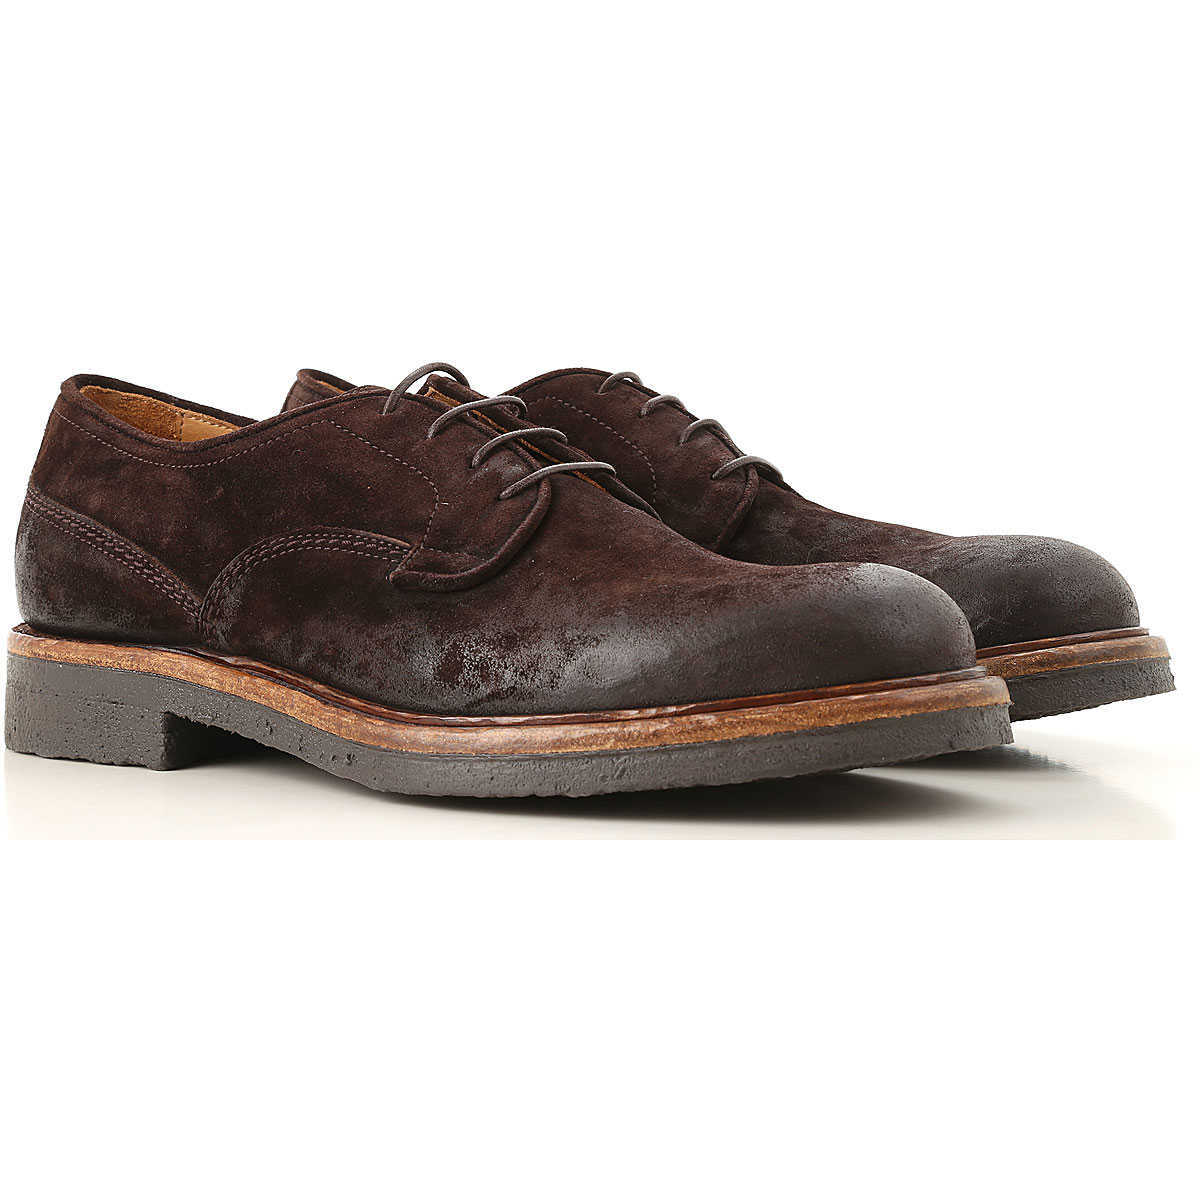 Corvari Lace Up Shoes for Men Oxfords Derbies and Brogues On Sale in Outlet SE - GOOFASH